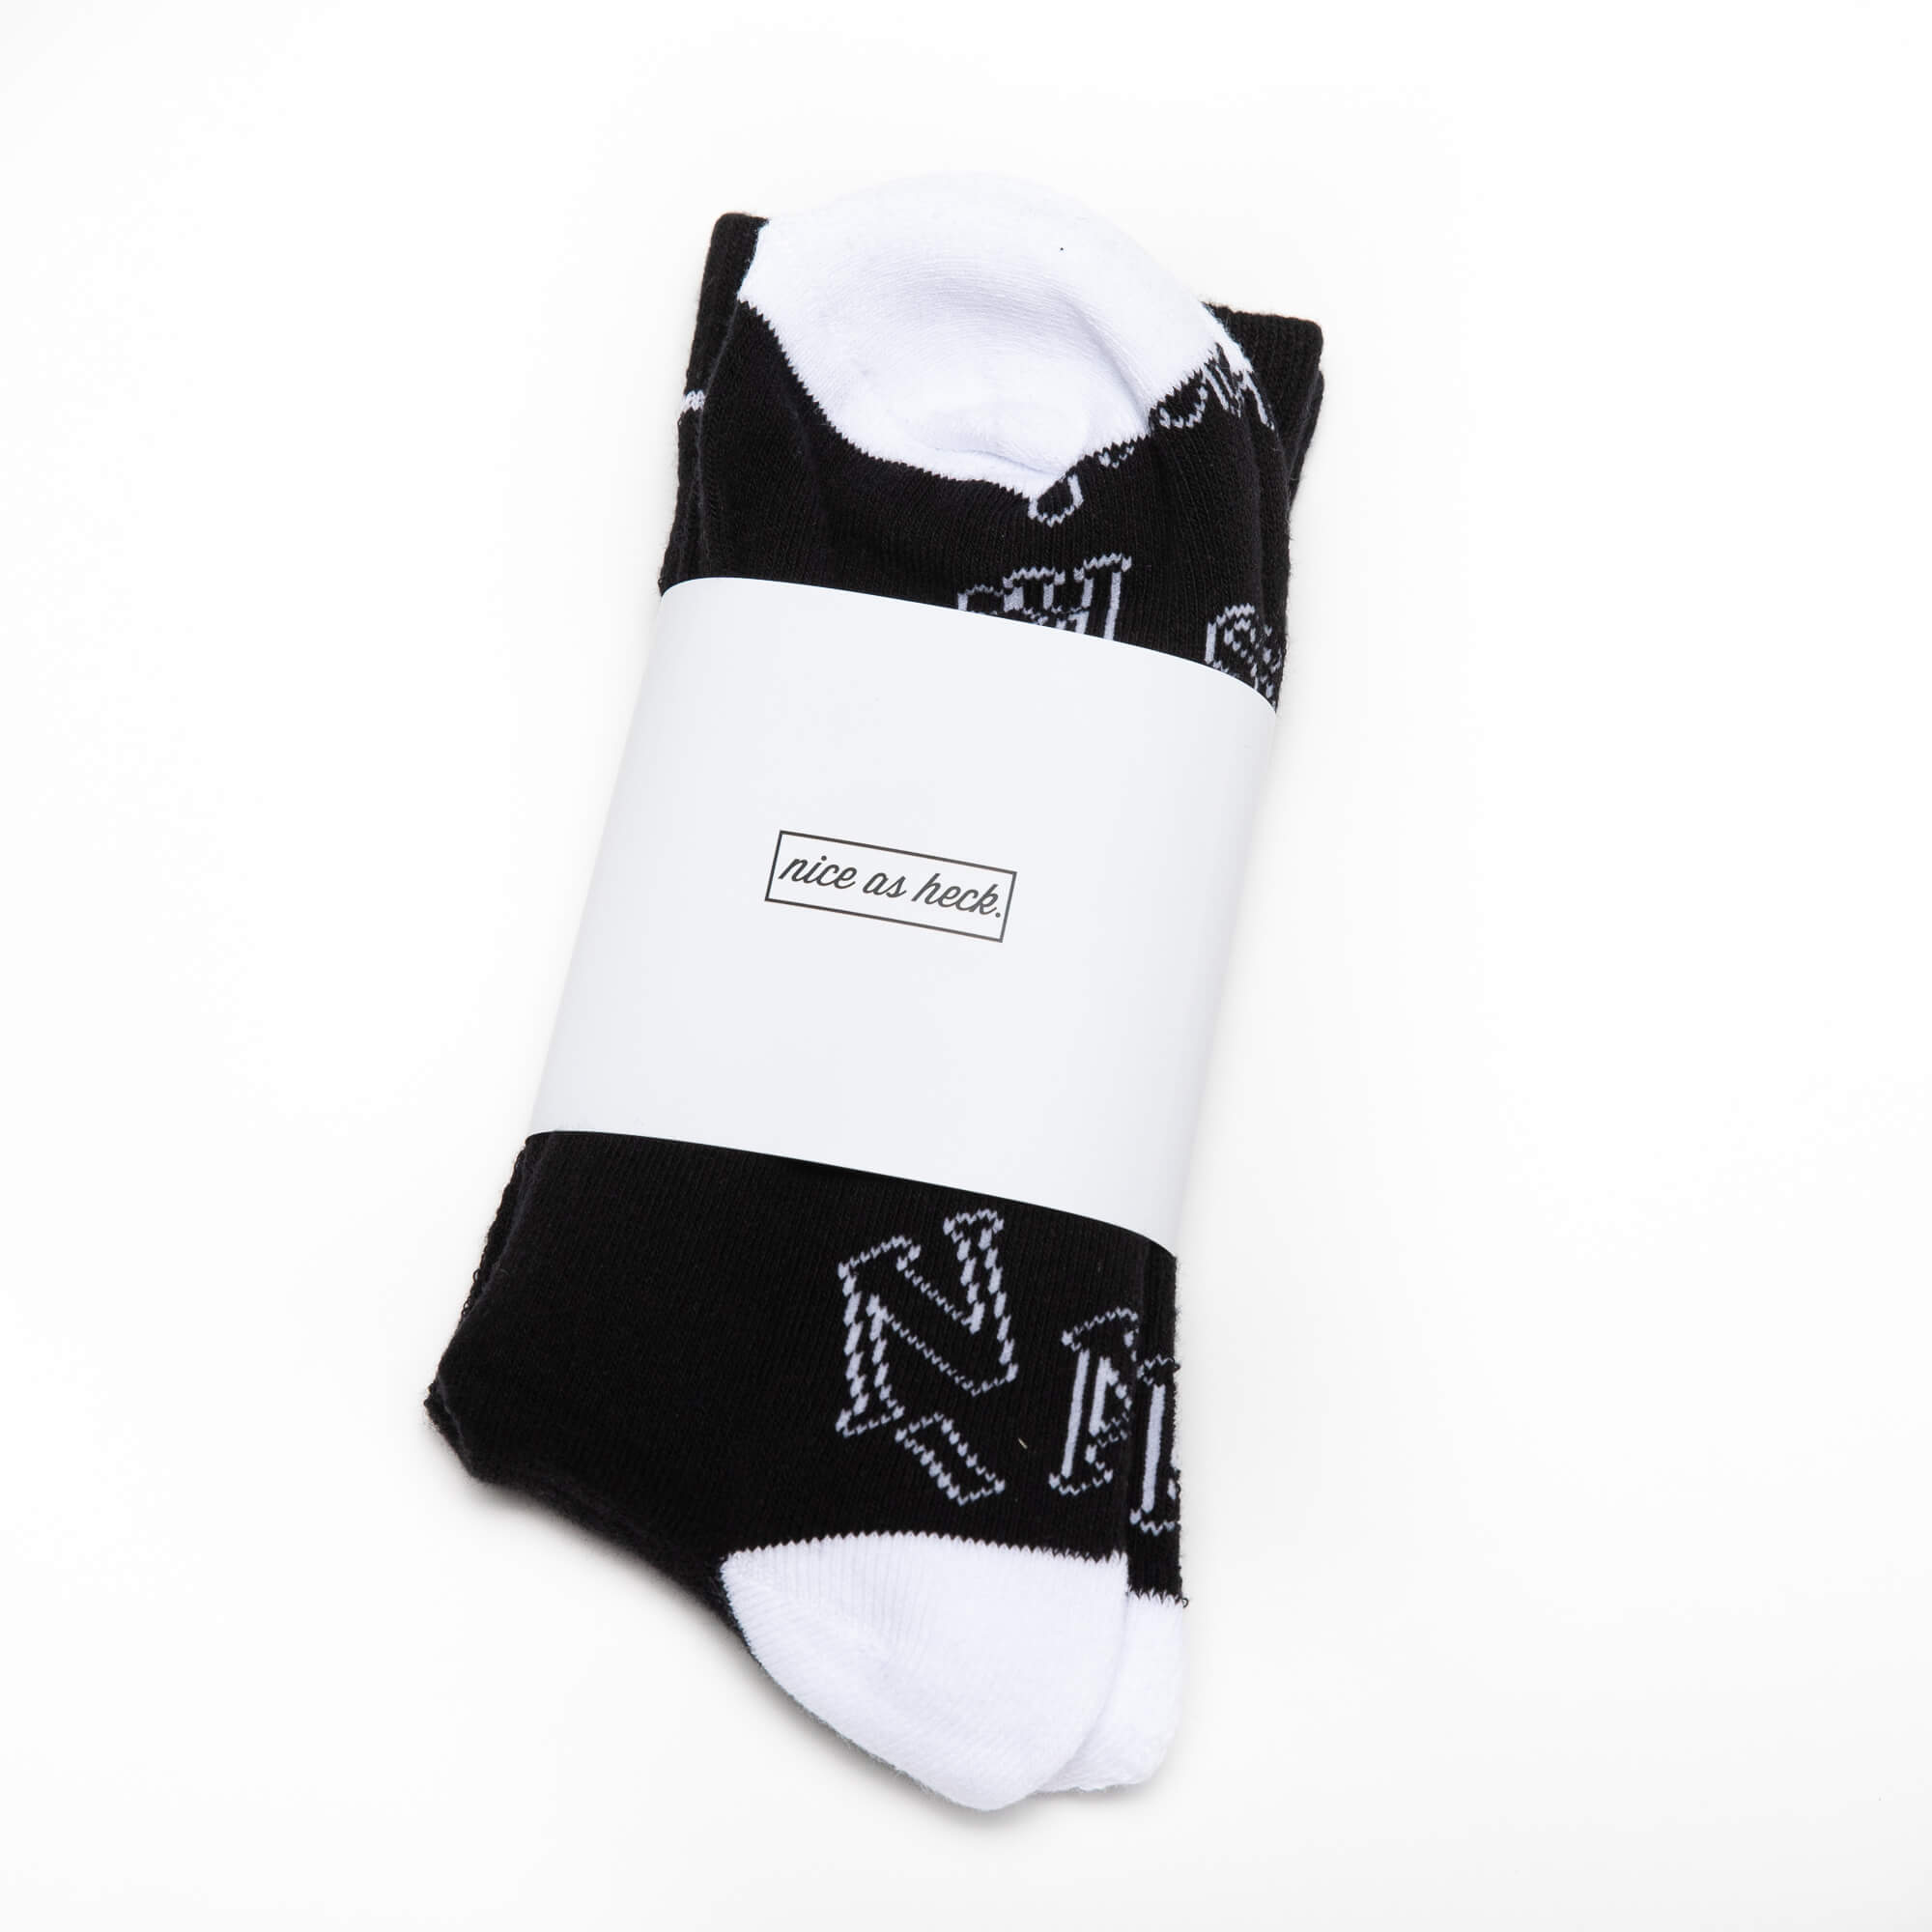 black jim socks in packaging